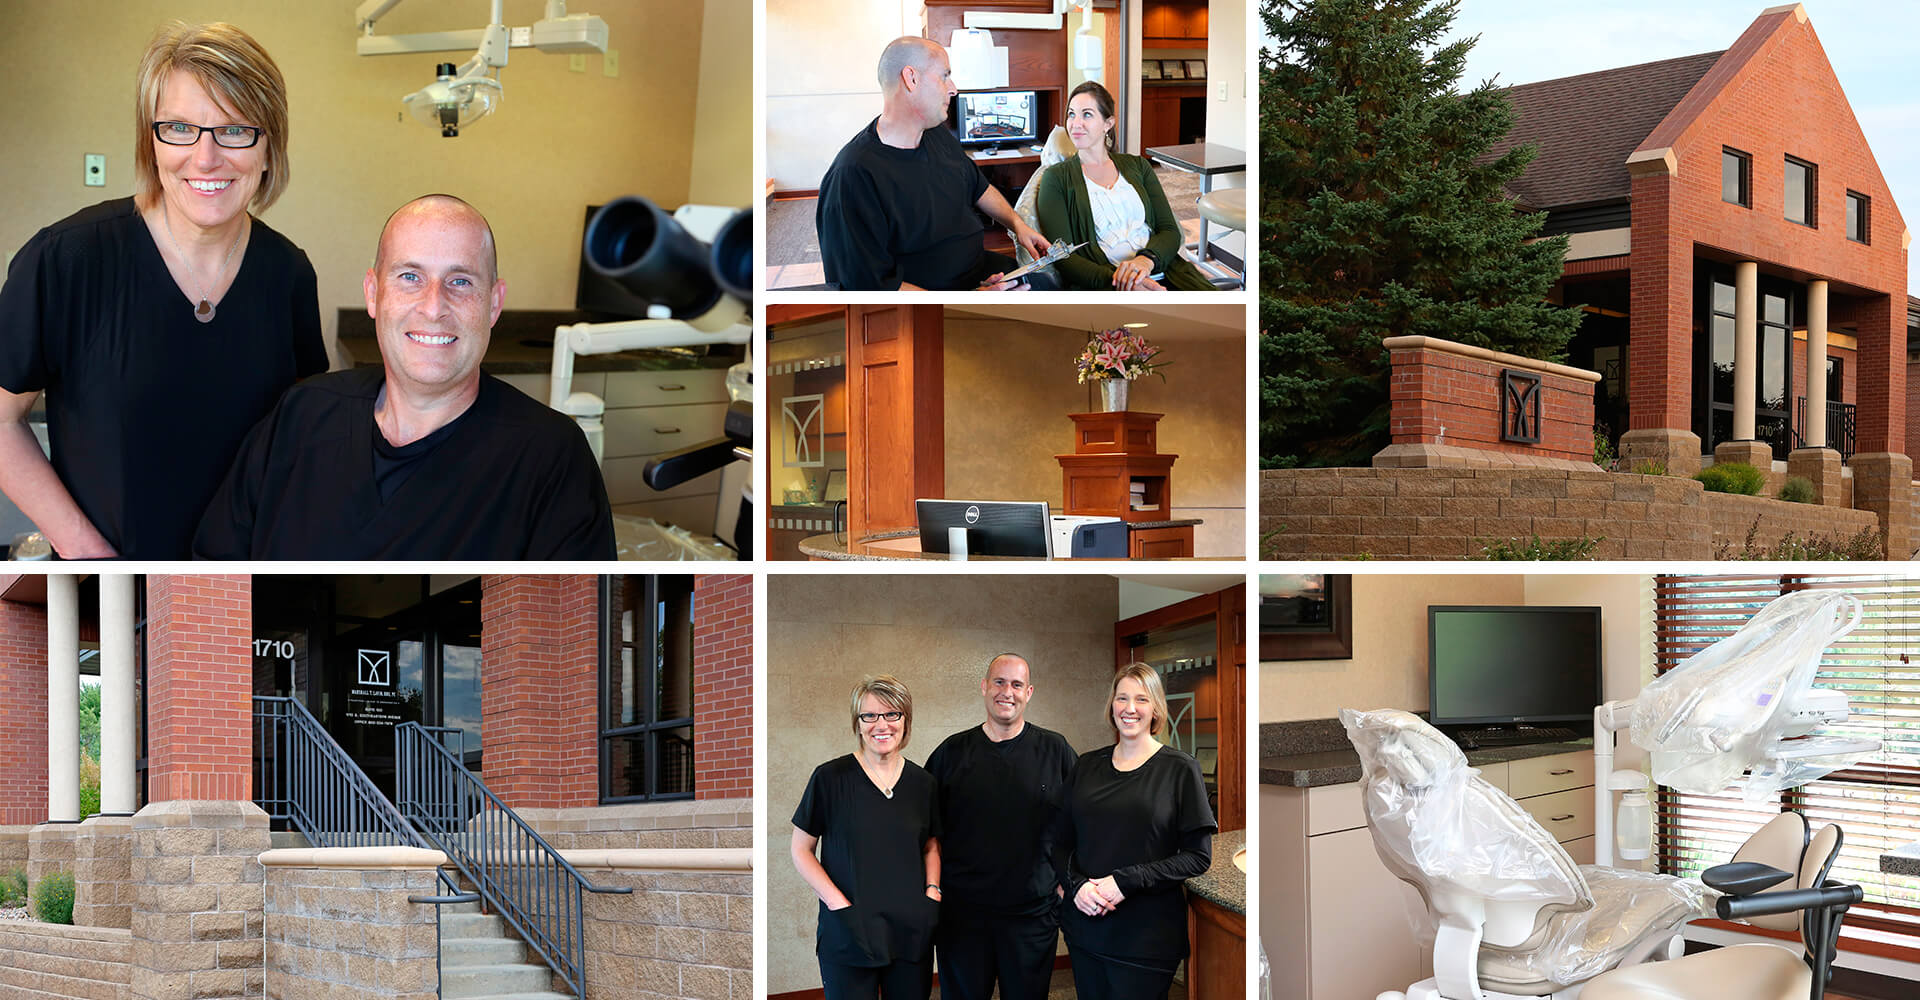 A collage of Dr. Lavin and his endodontic office